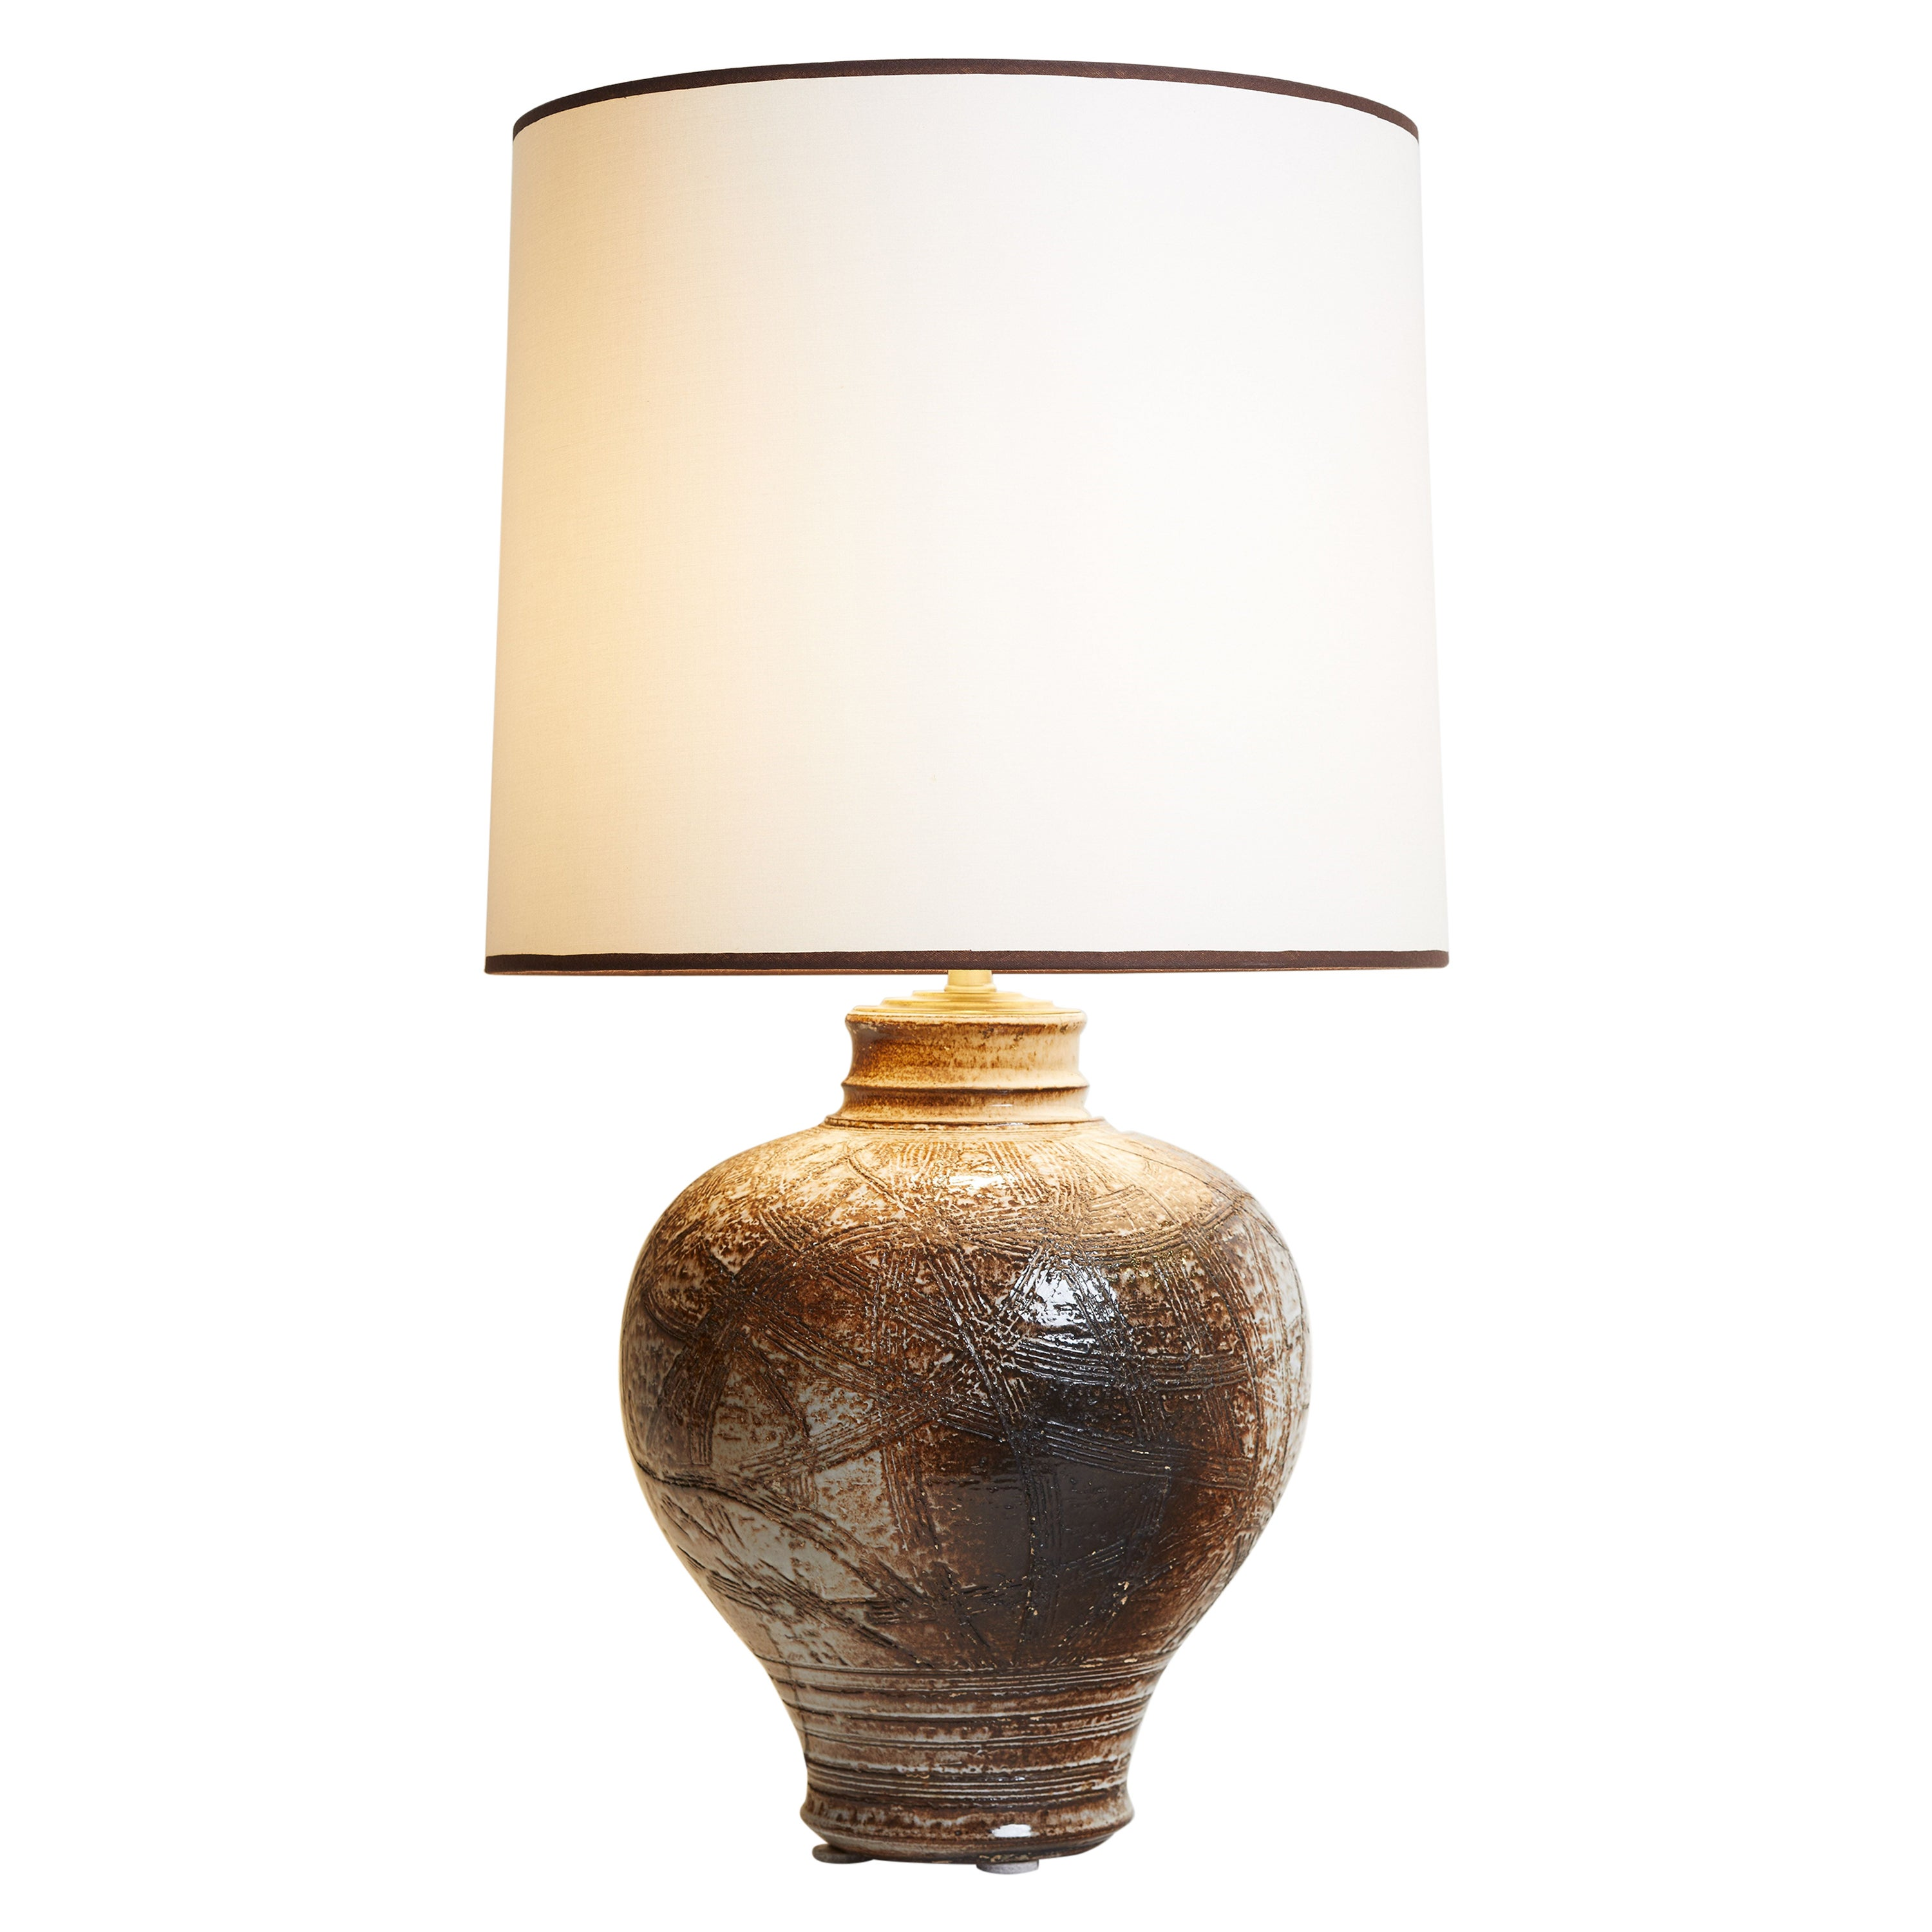 1960s France Brown & Ivory Pottery Table Lamp with Custom White Lampshade